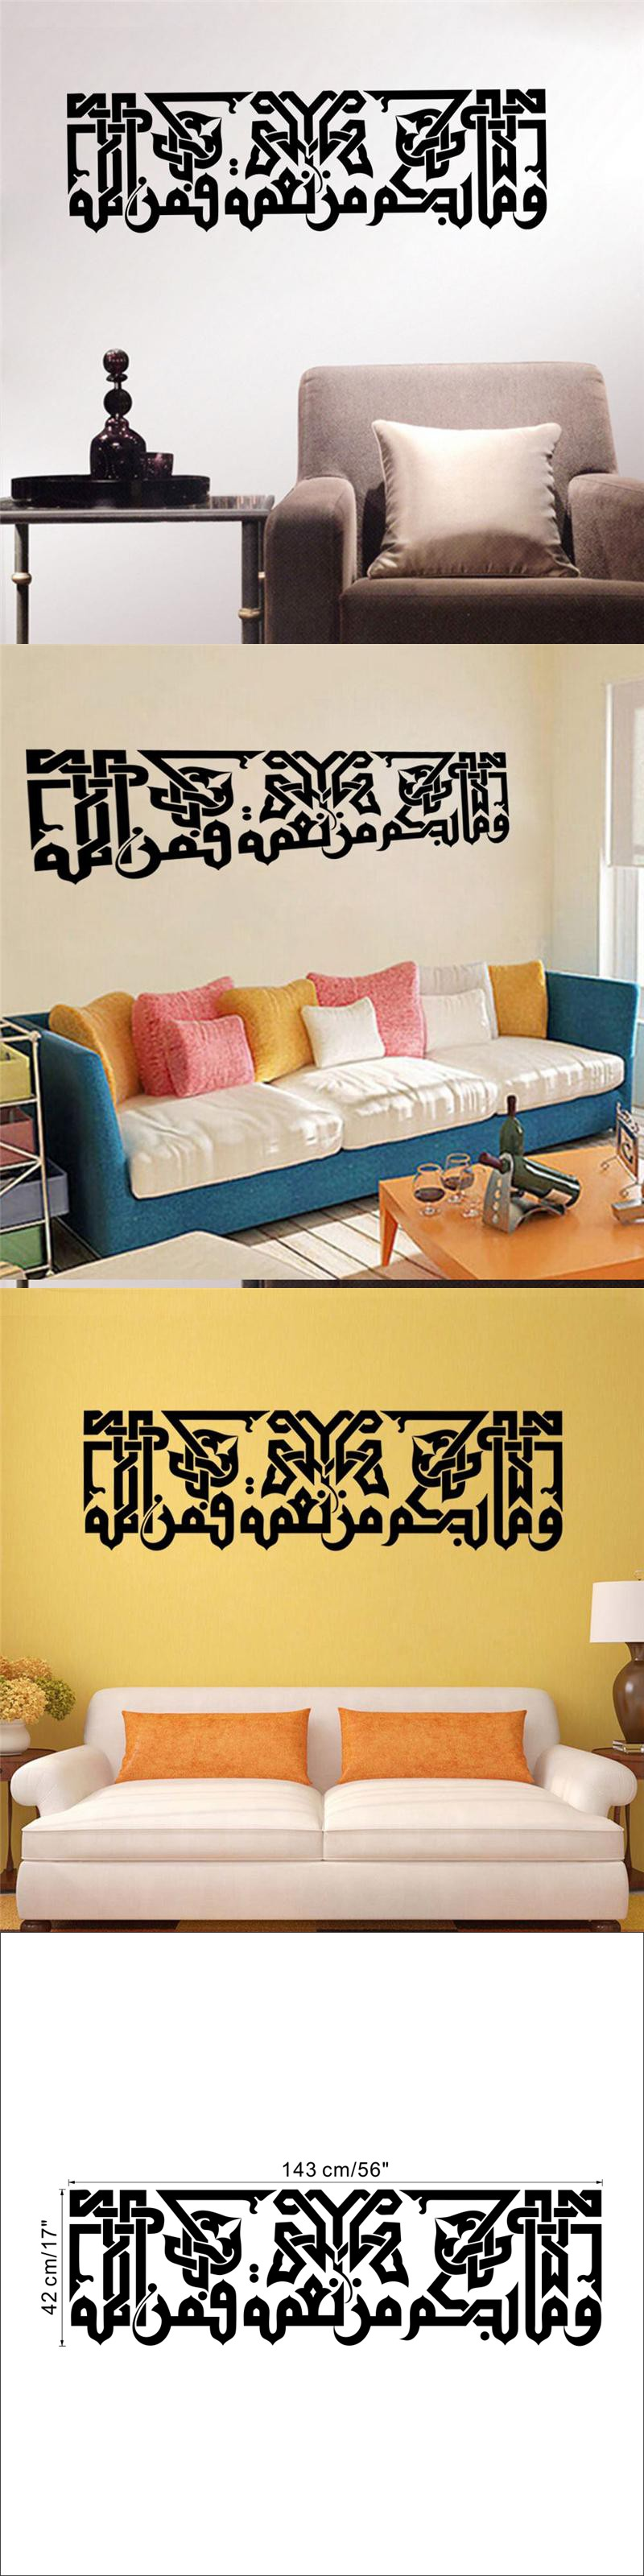 Inspirational quotes wall stickers islamic muslim room decor 565 ...